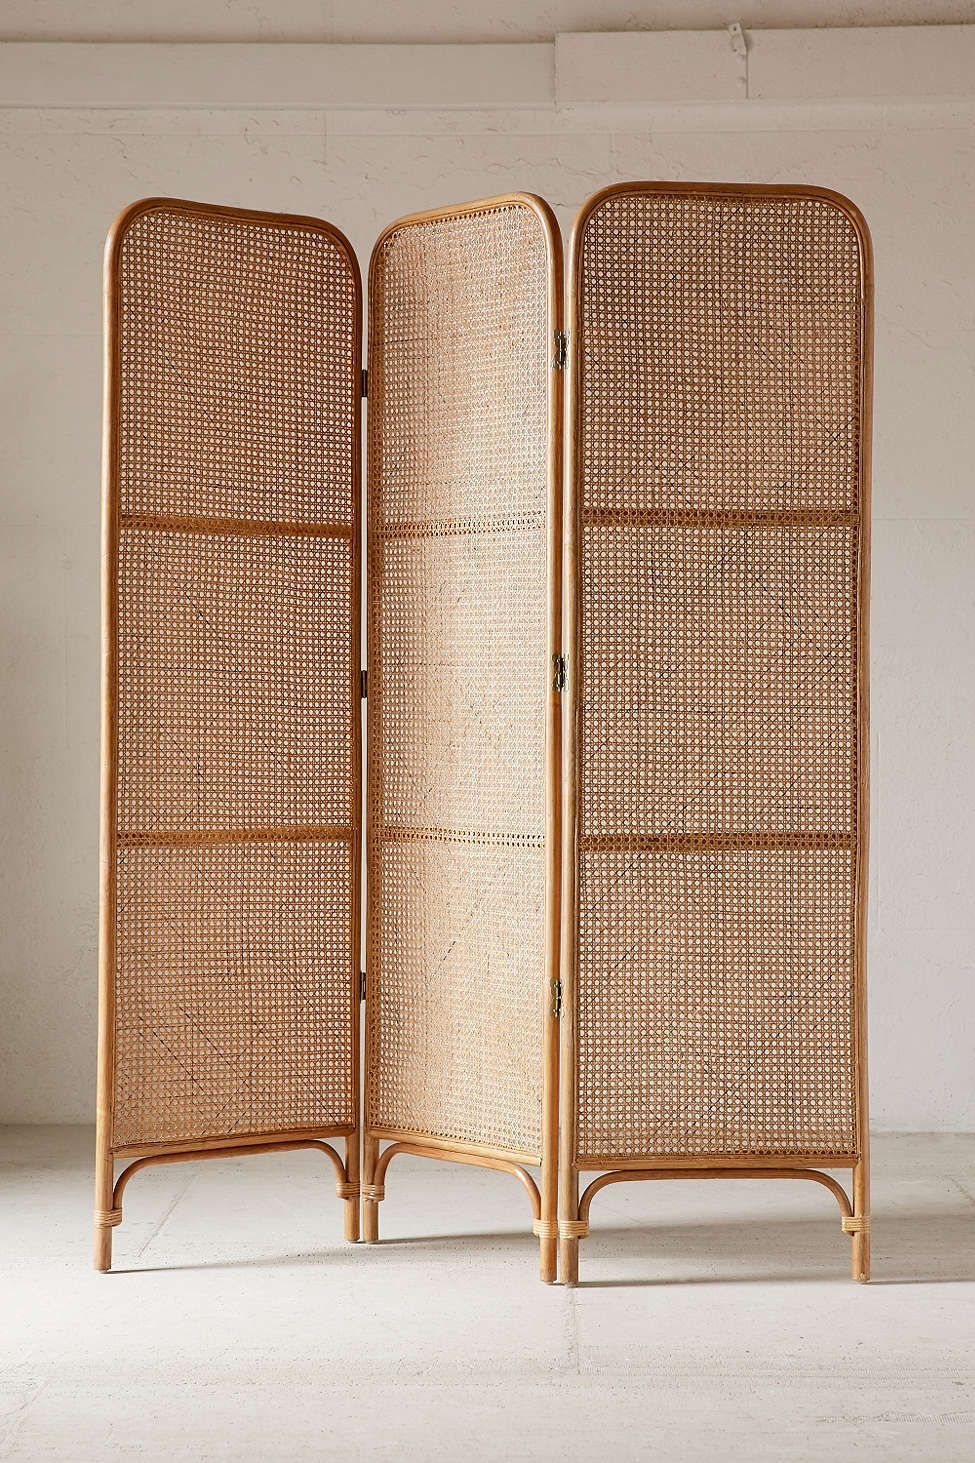 Paravent Rattan Rattan Screen Room Divider In The Bedroom Home Decor